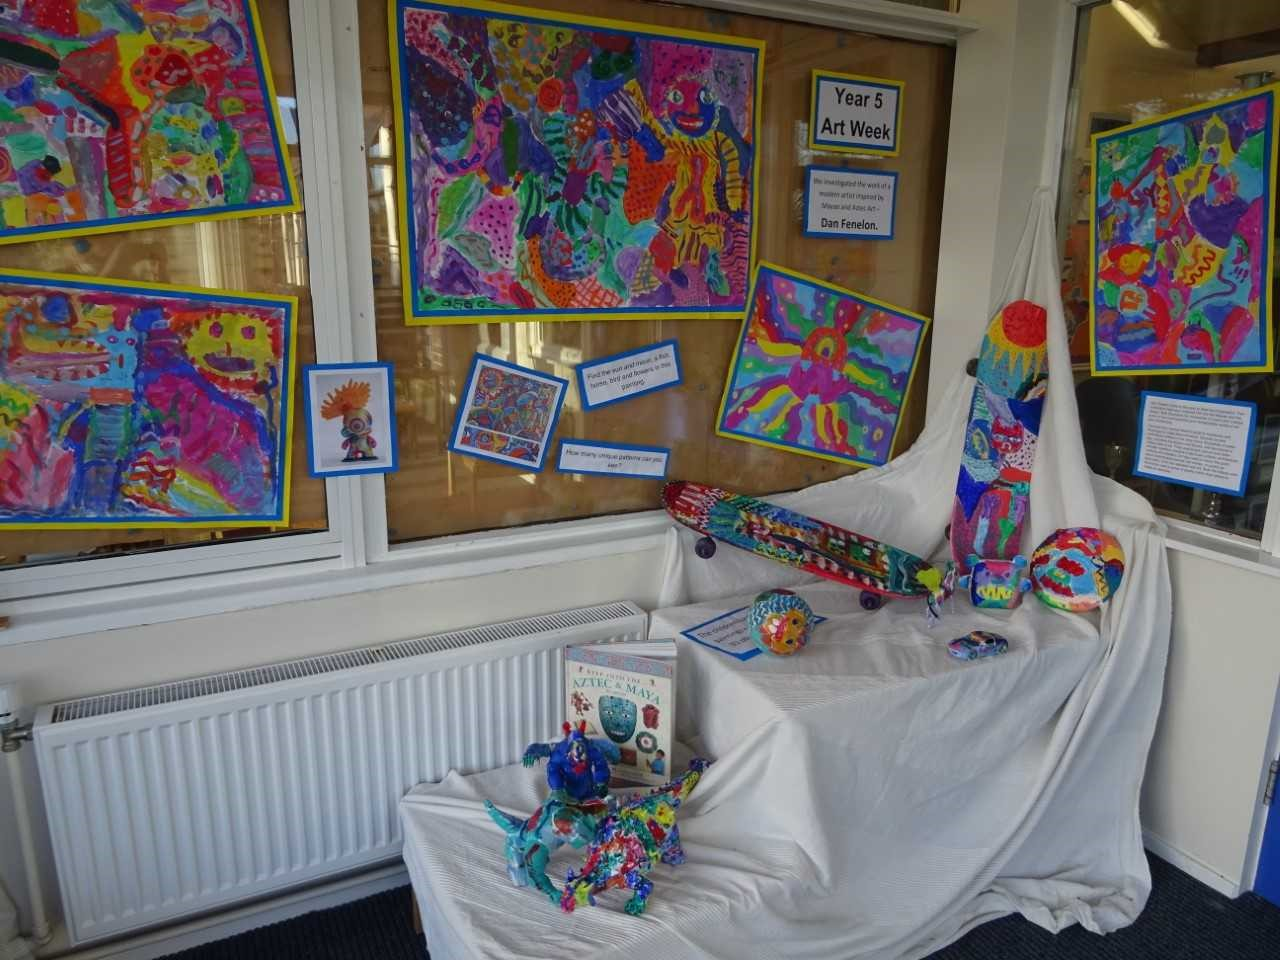 Very colourful Artwork at Wavell Junior School